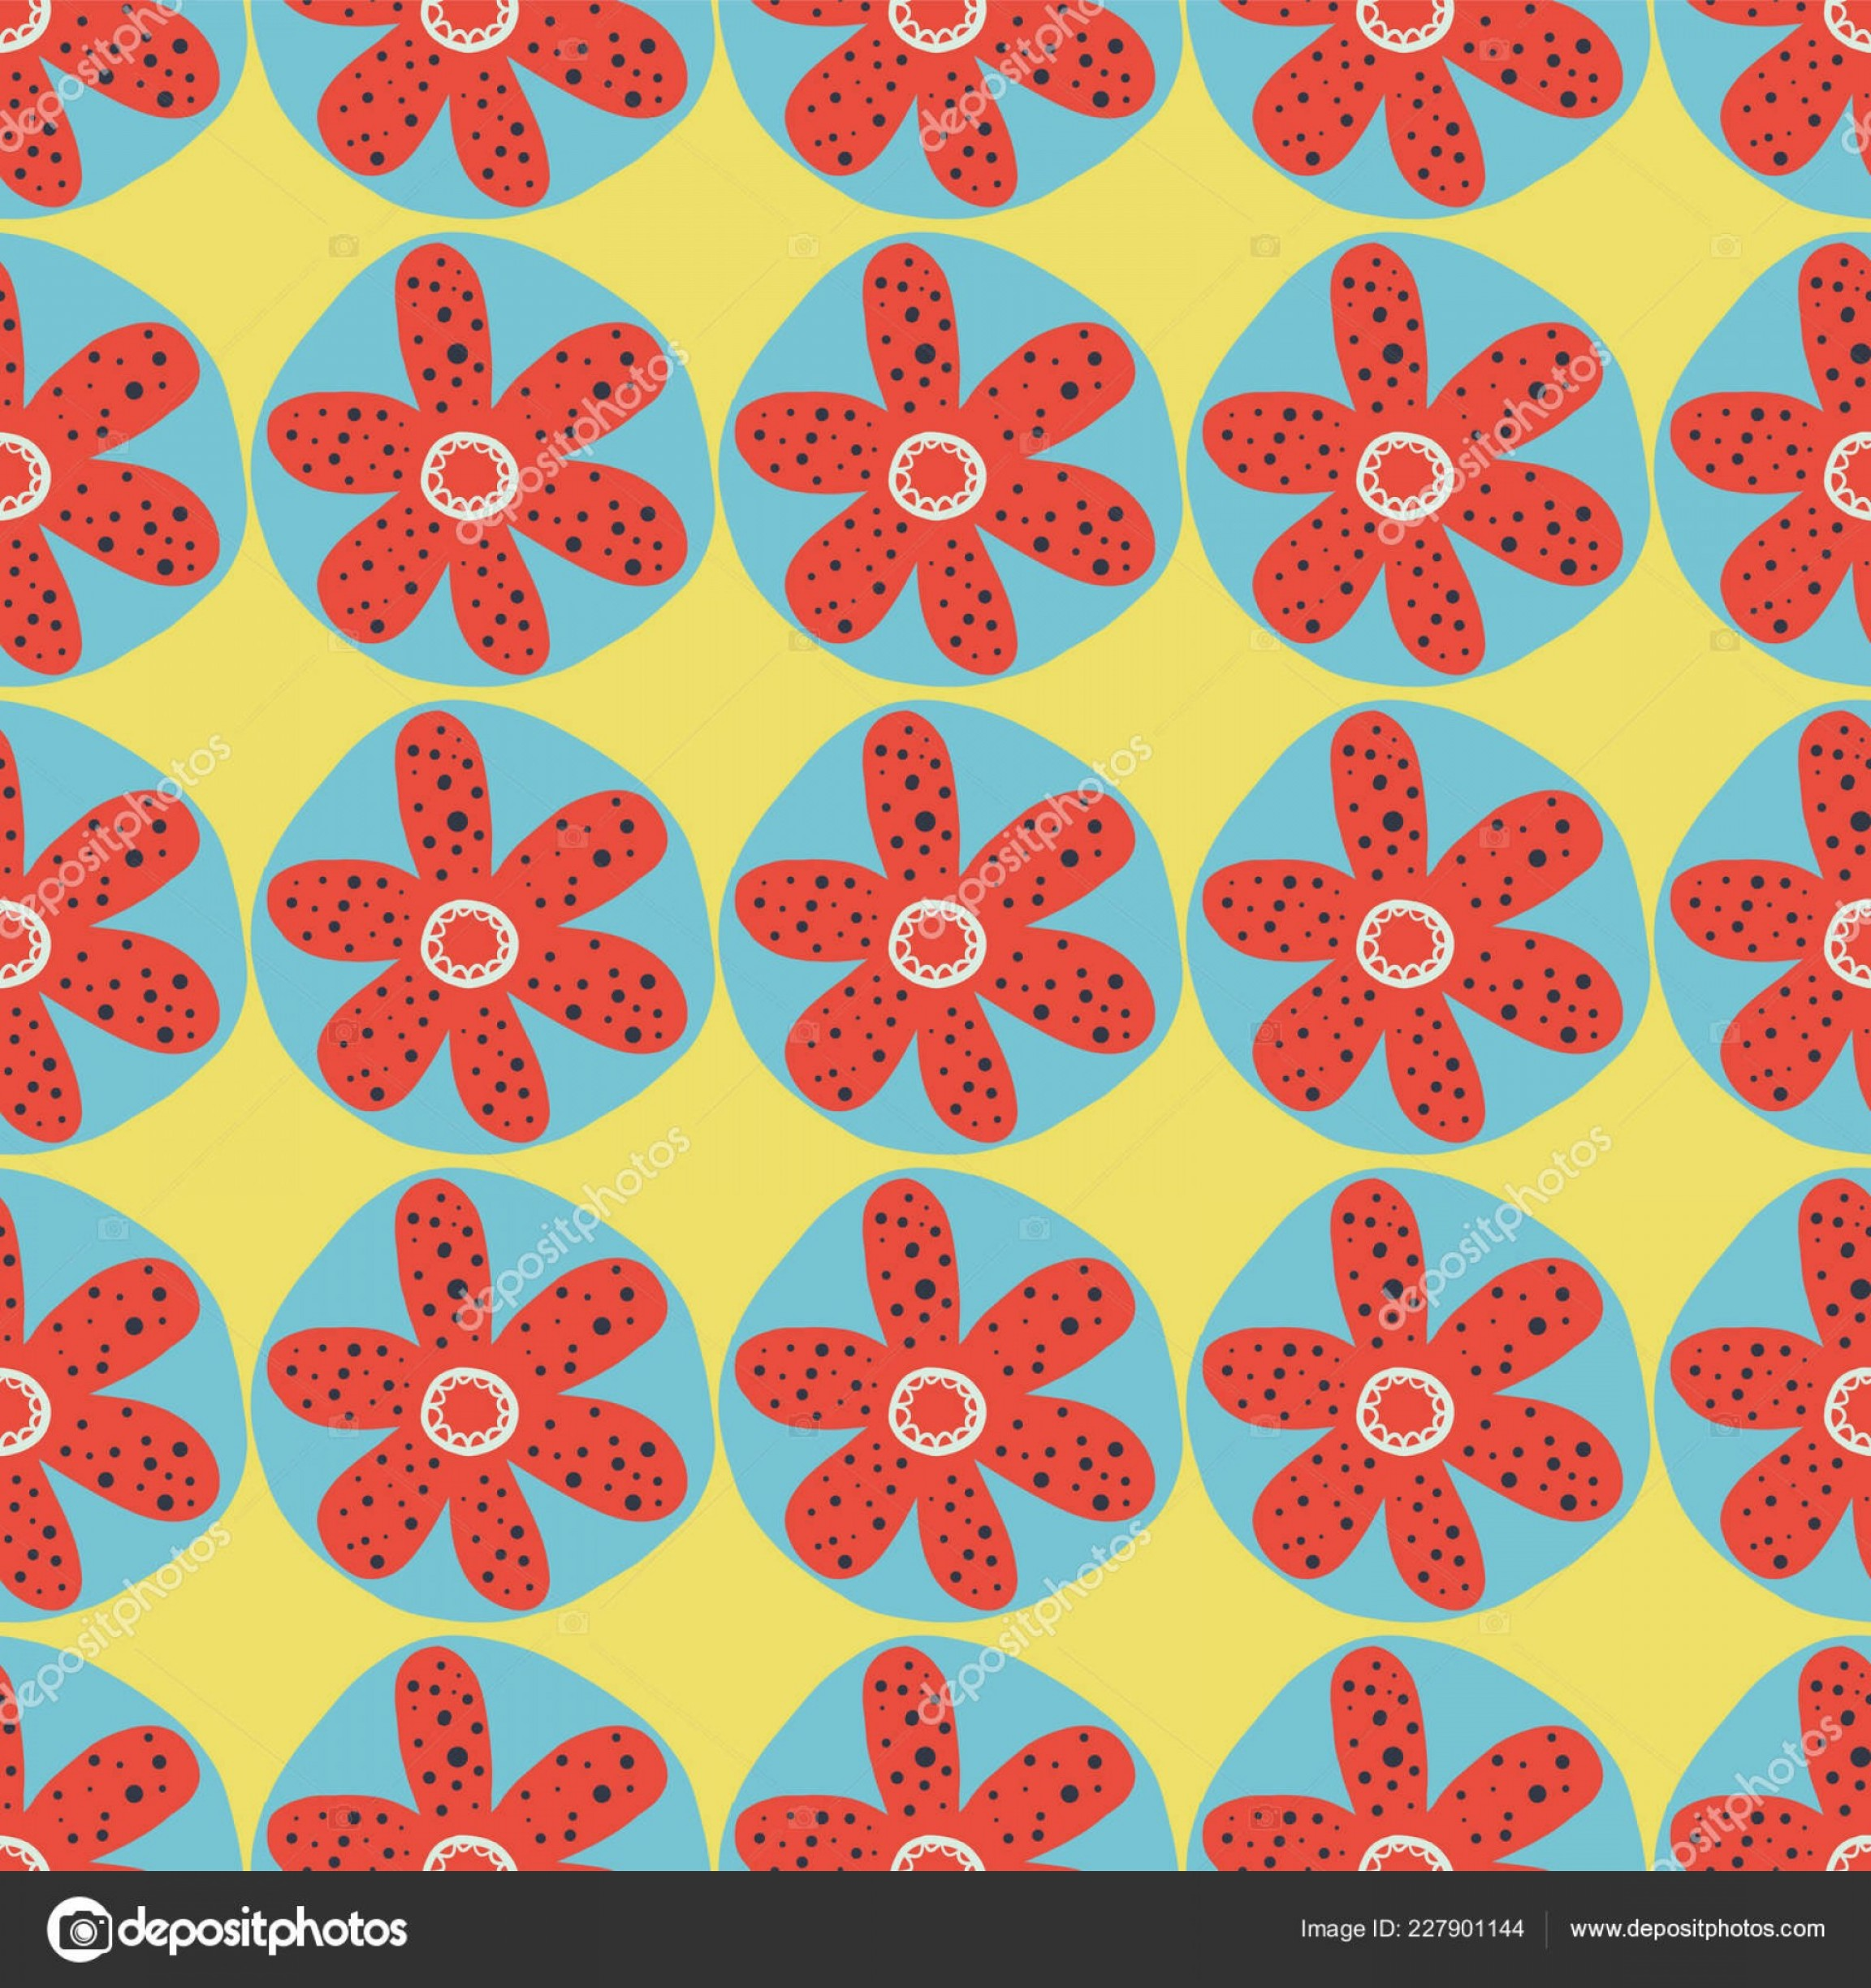 Distressed Red Background Vector: Stock Illustration Retro Flowers Seamless Vector Background